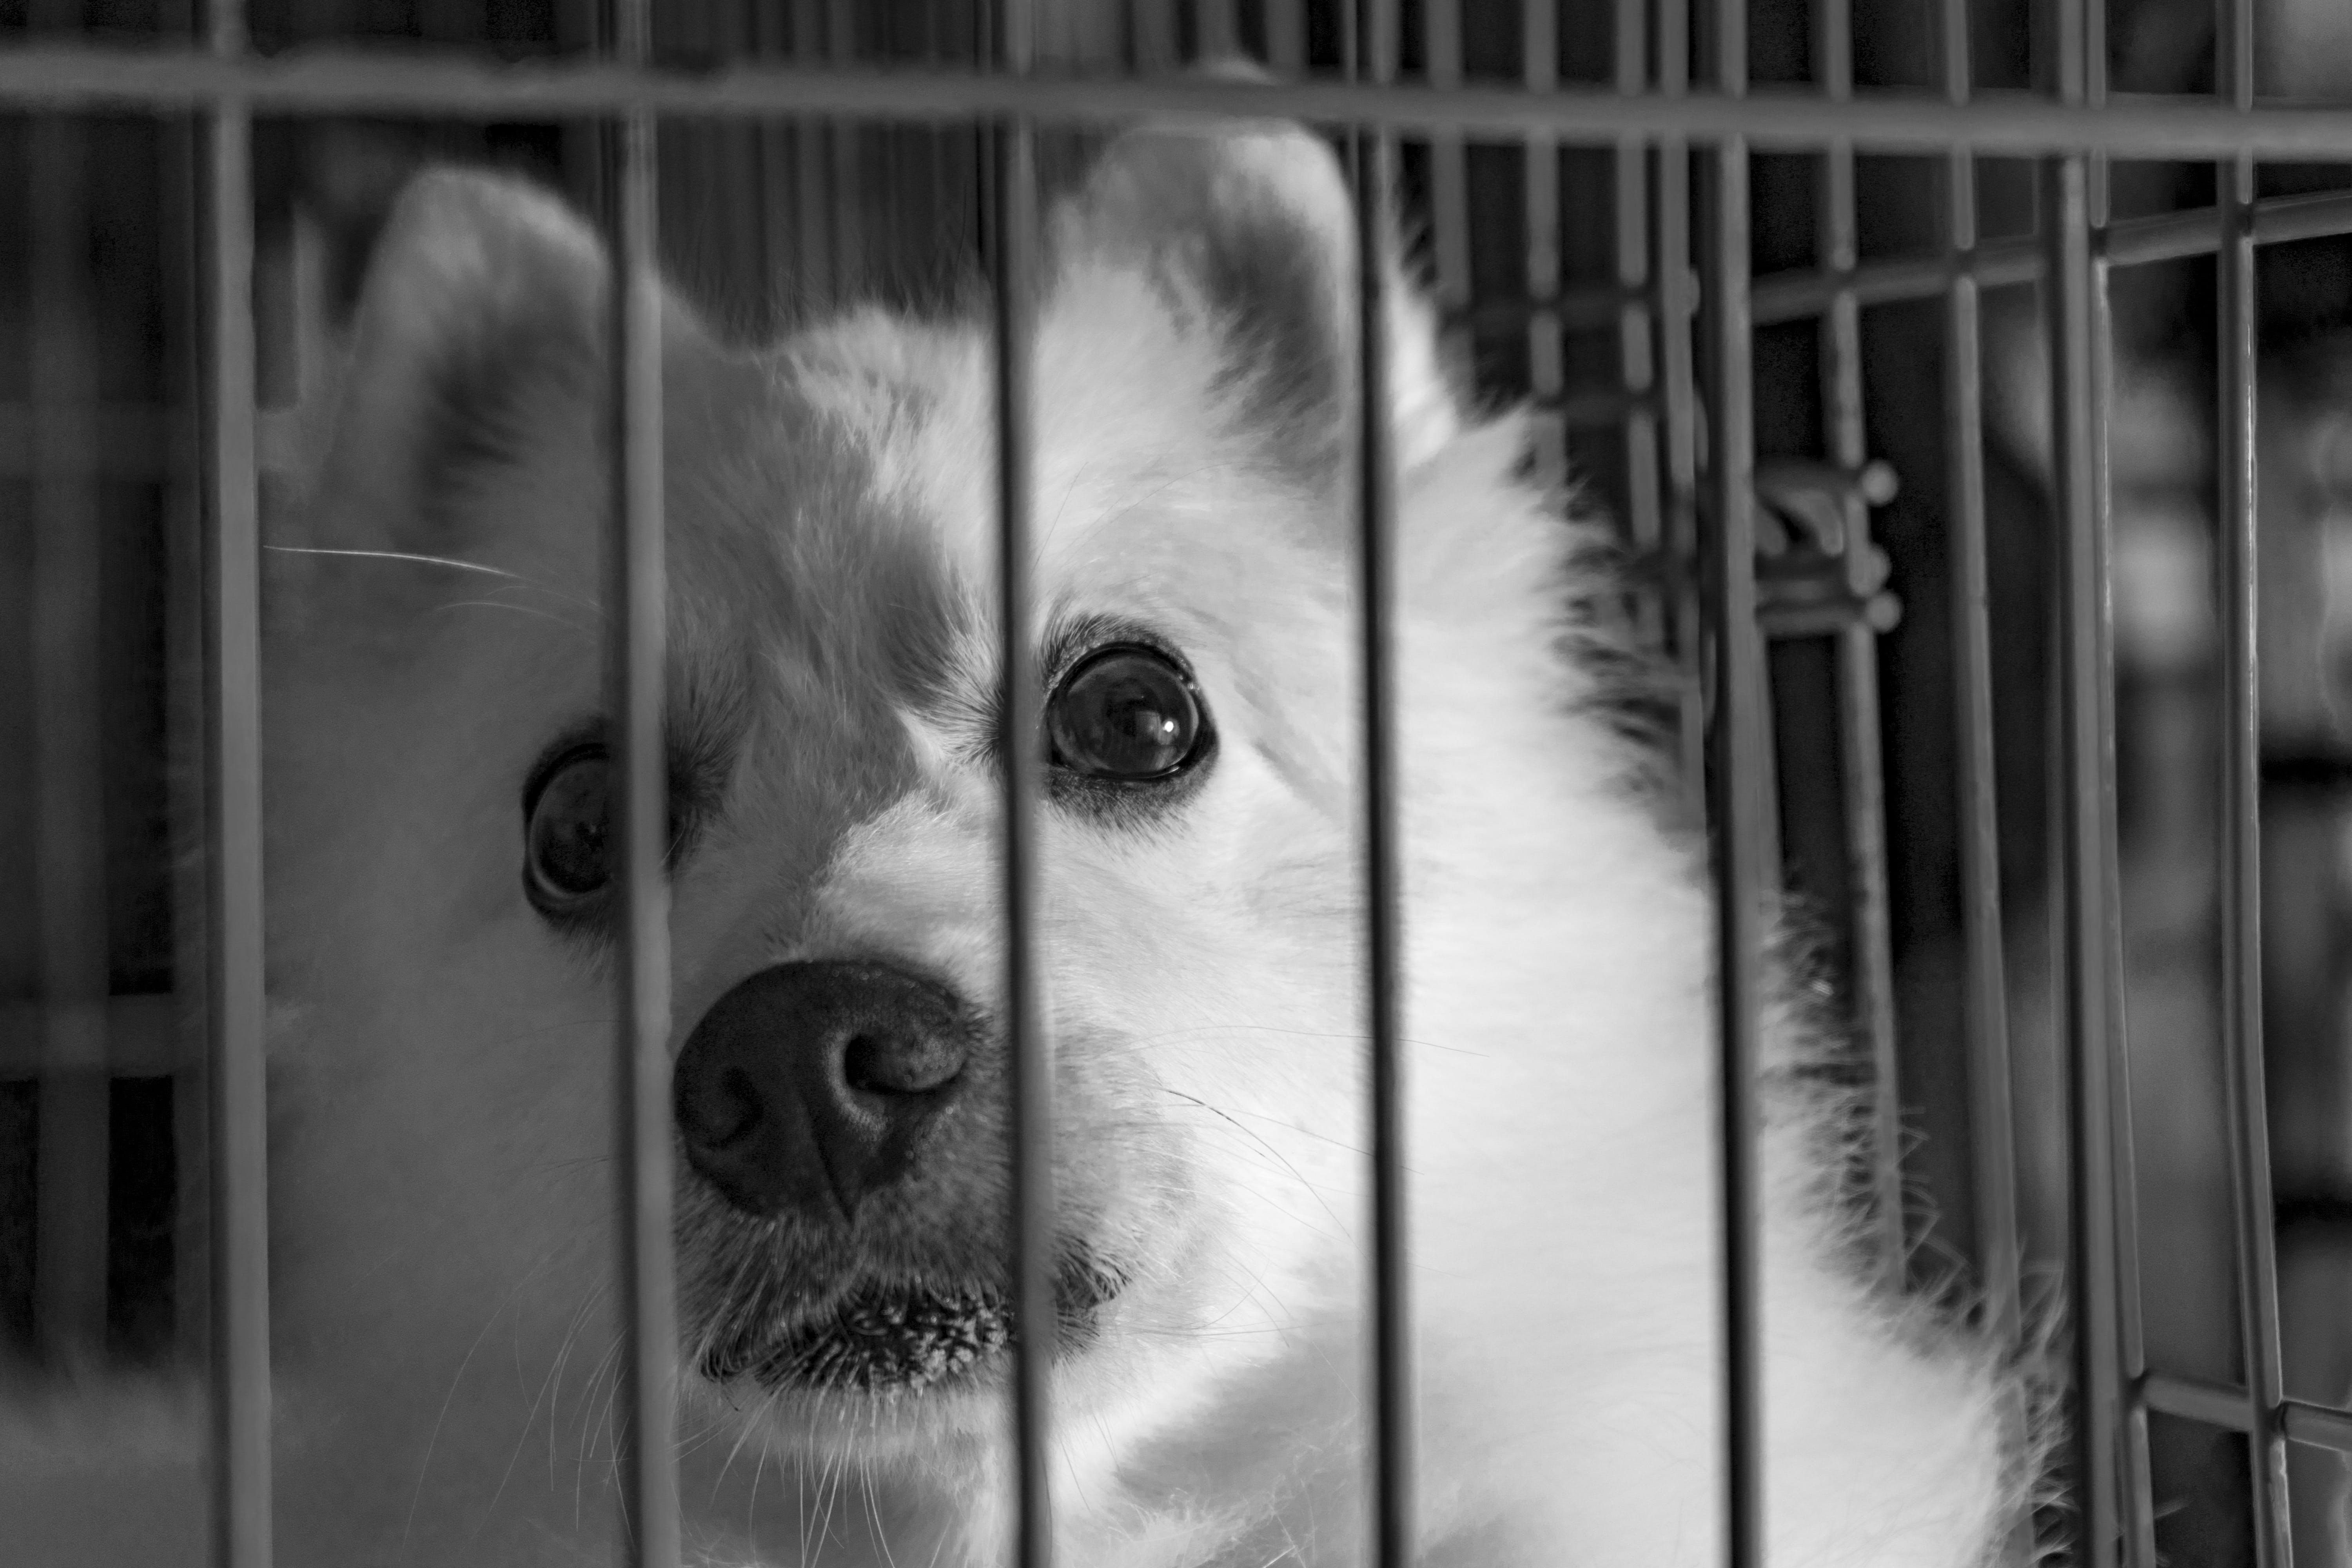 Grayscale Photography of Dog in Cage